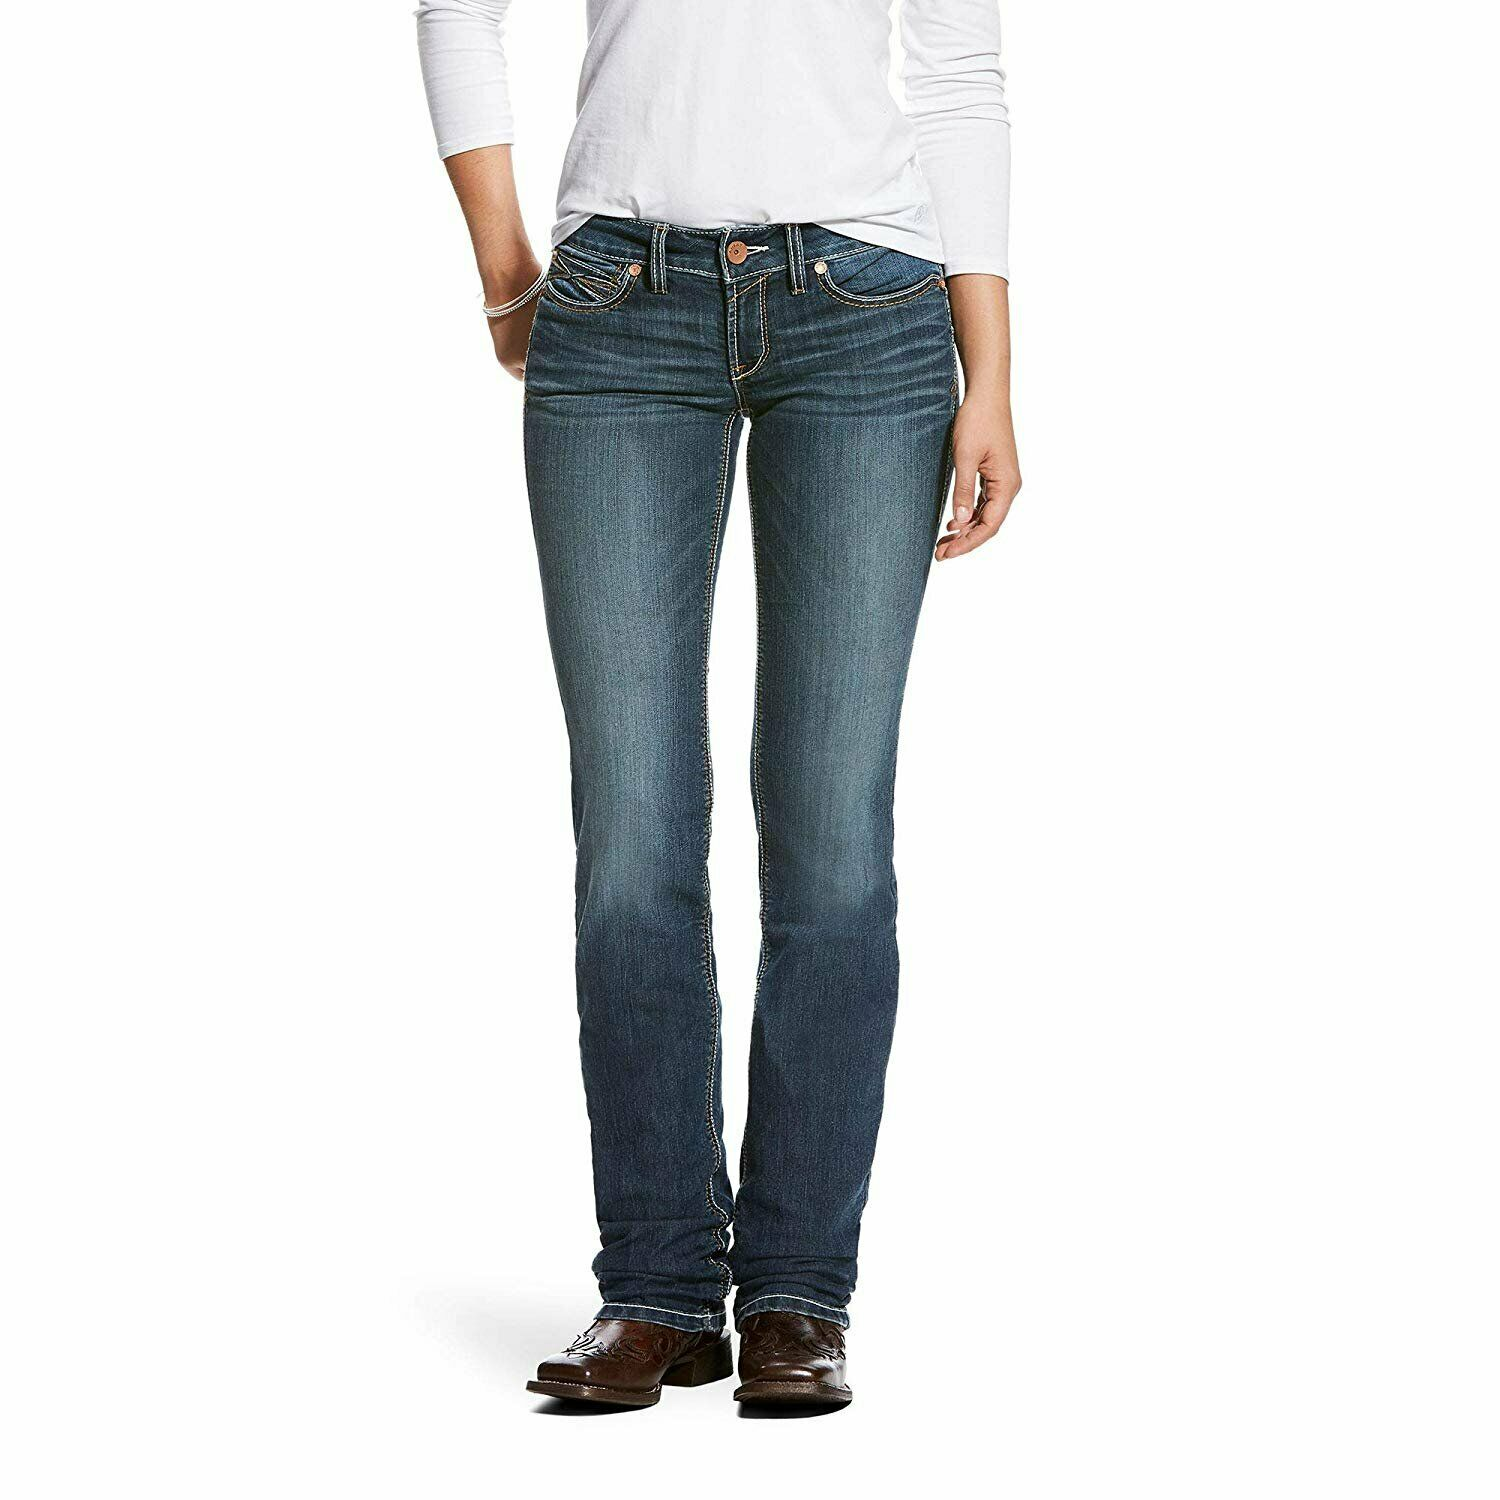 Véritable ARIAT taille basse Handcrafted Empilable Coupe Droite Jean